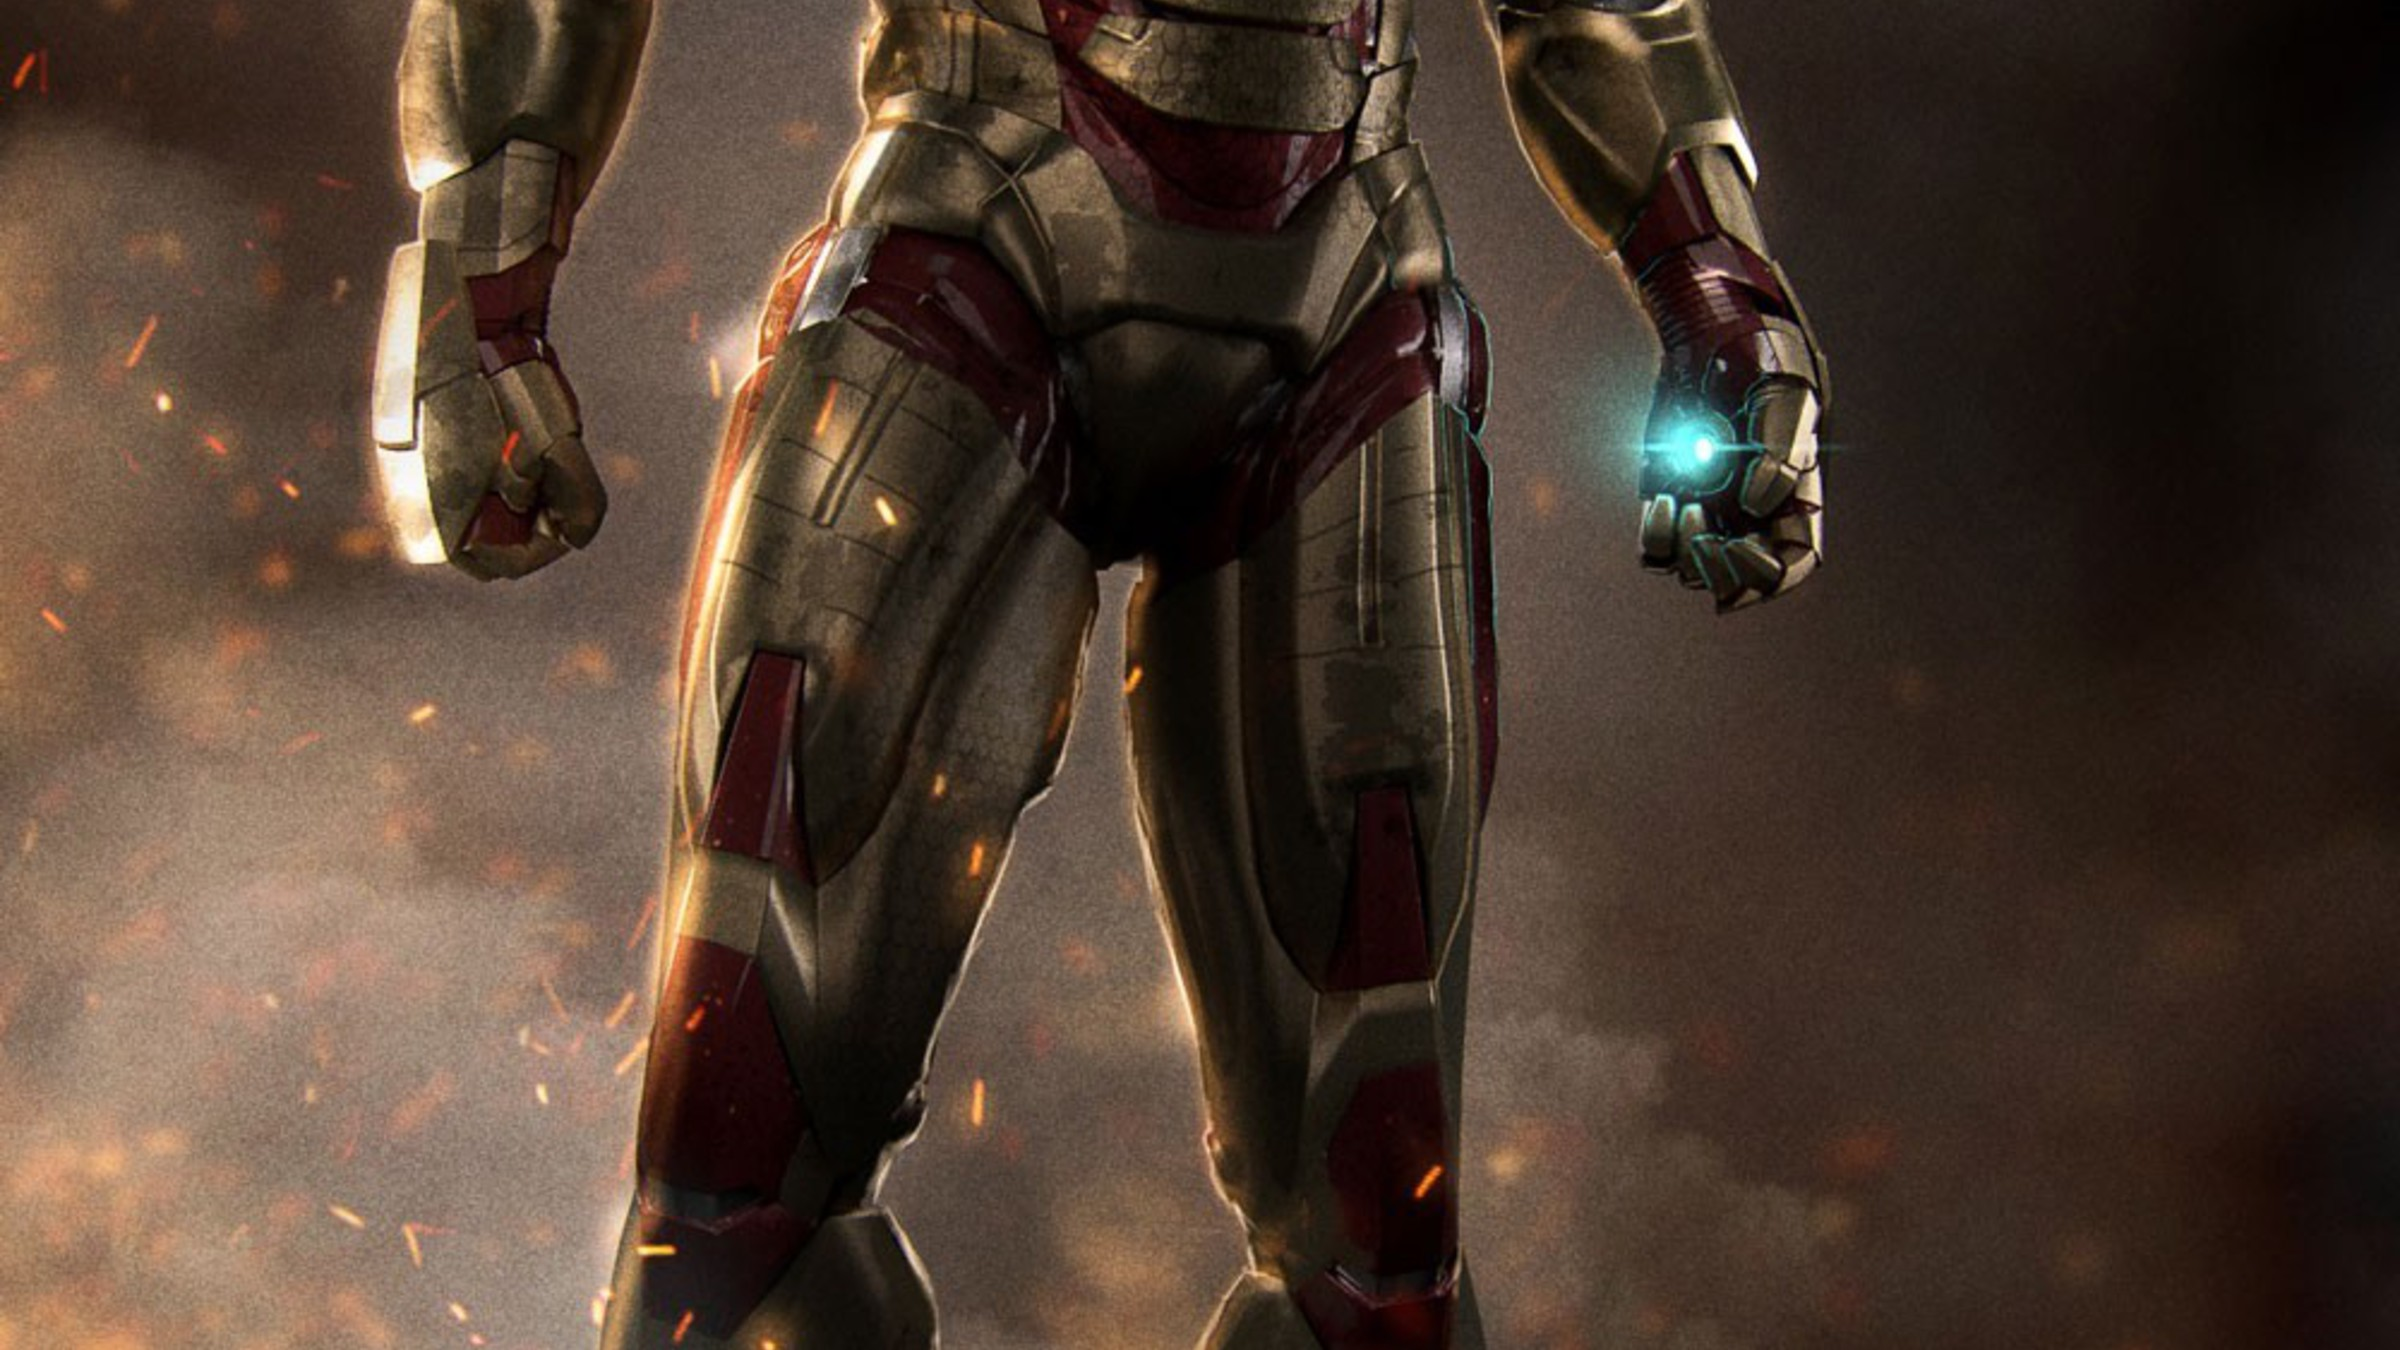 iron man artwork marvel comics 3 mark 42 wallpaper | allwallpaper.in